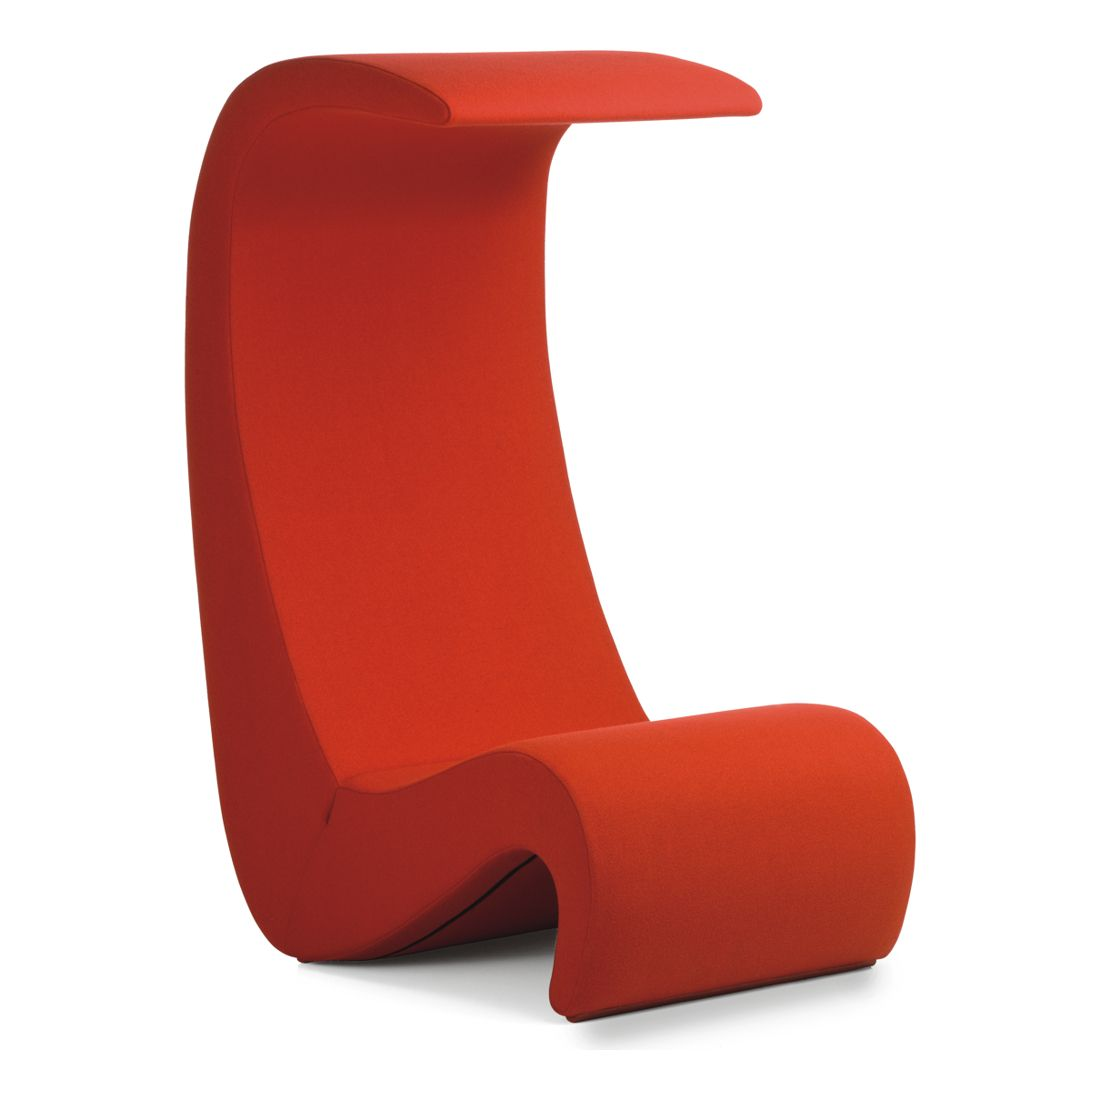 amoebe highback verner panton stuhl chair vitra tonus red rot m belprojekt pinterest. Black Bedroom Furniture Sets. Home Design Ideas